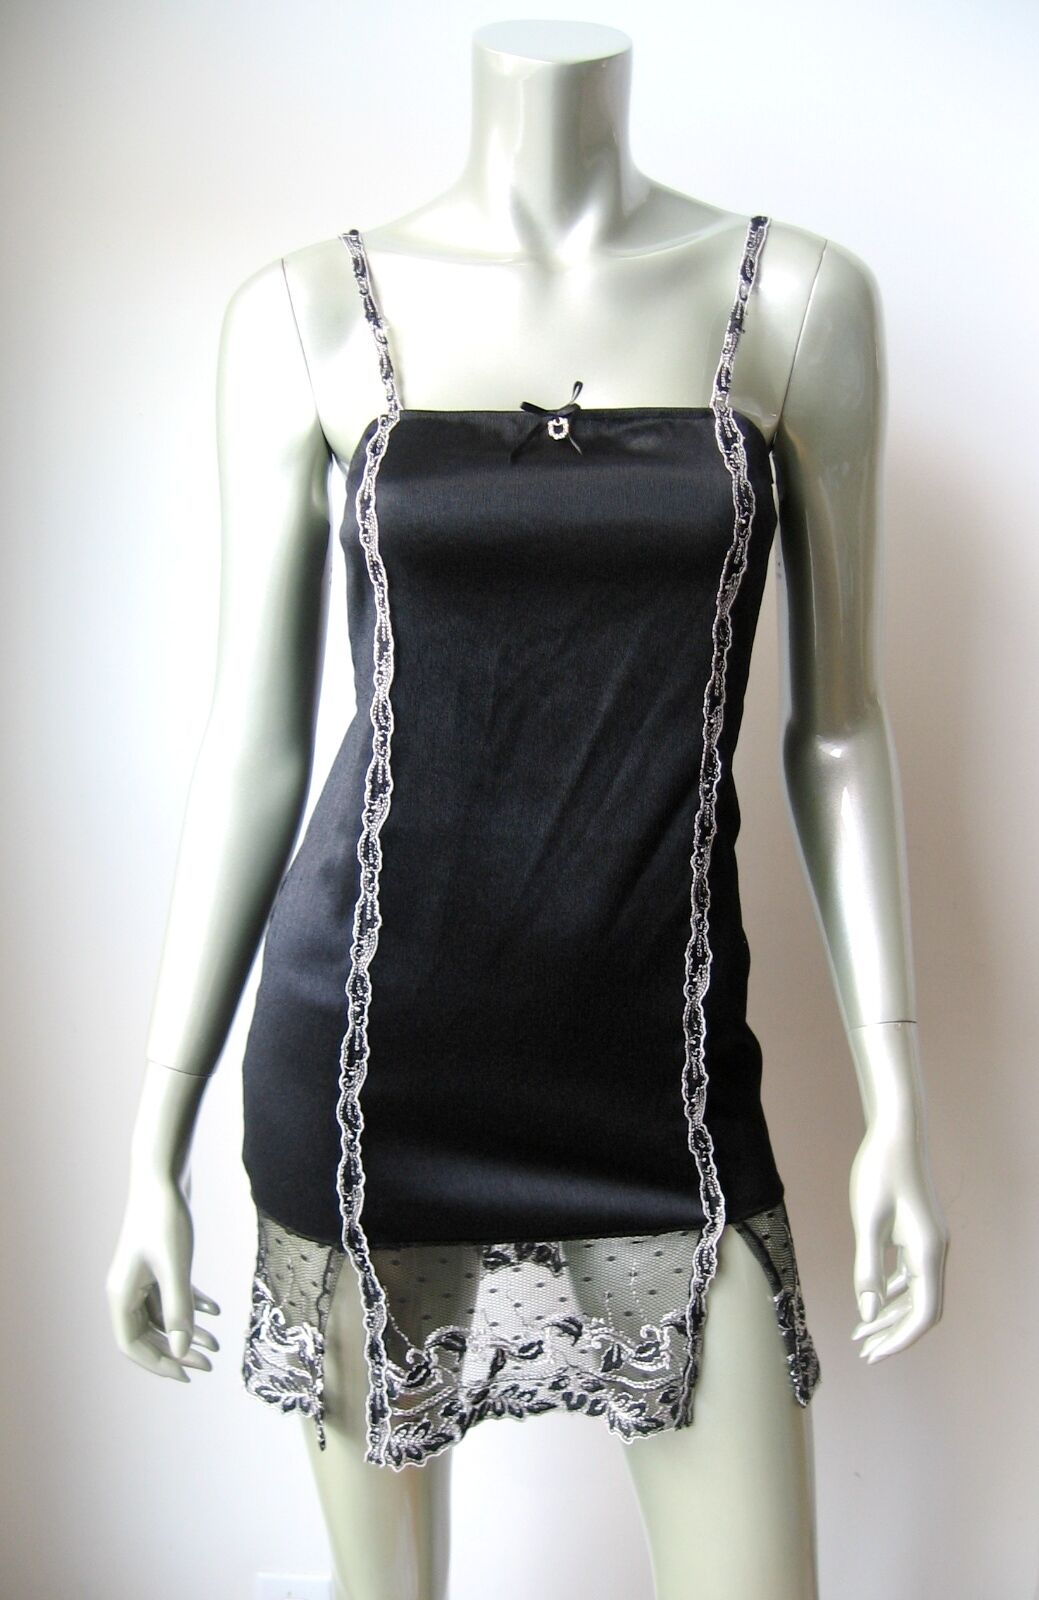 www.prominentresults.com :IN010 Unidea NEW Black Stretch Satin Embroidered Lace Chemise 2 Made In Italy PR